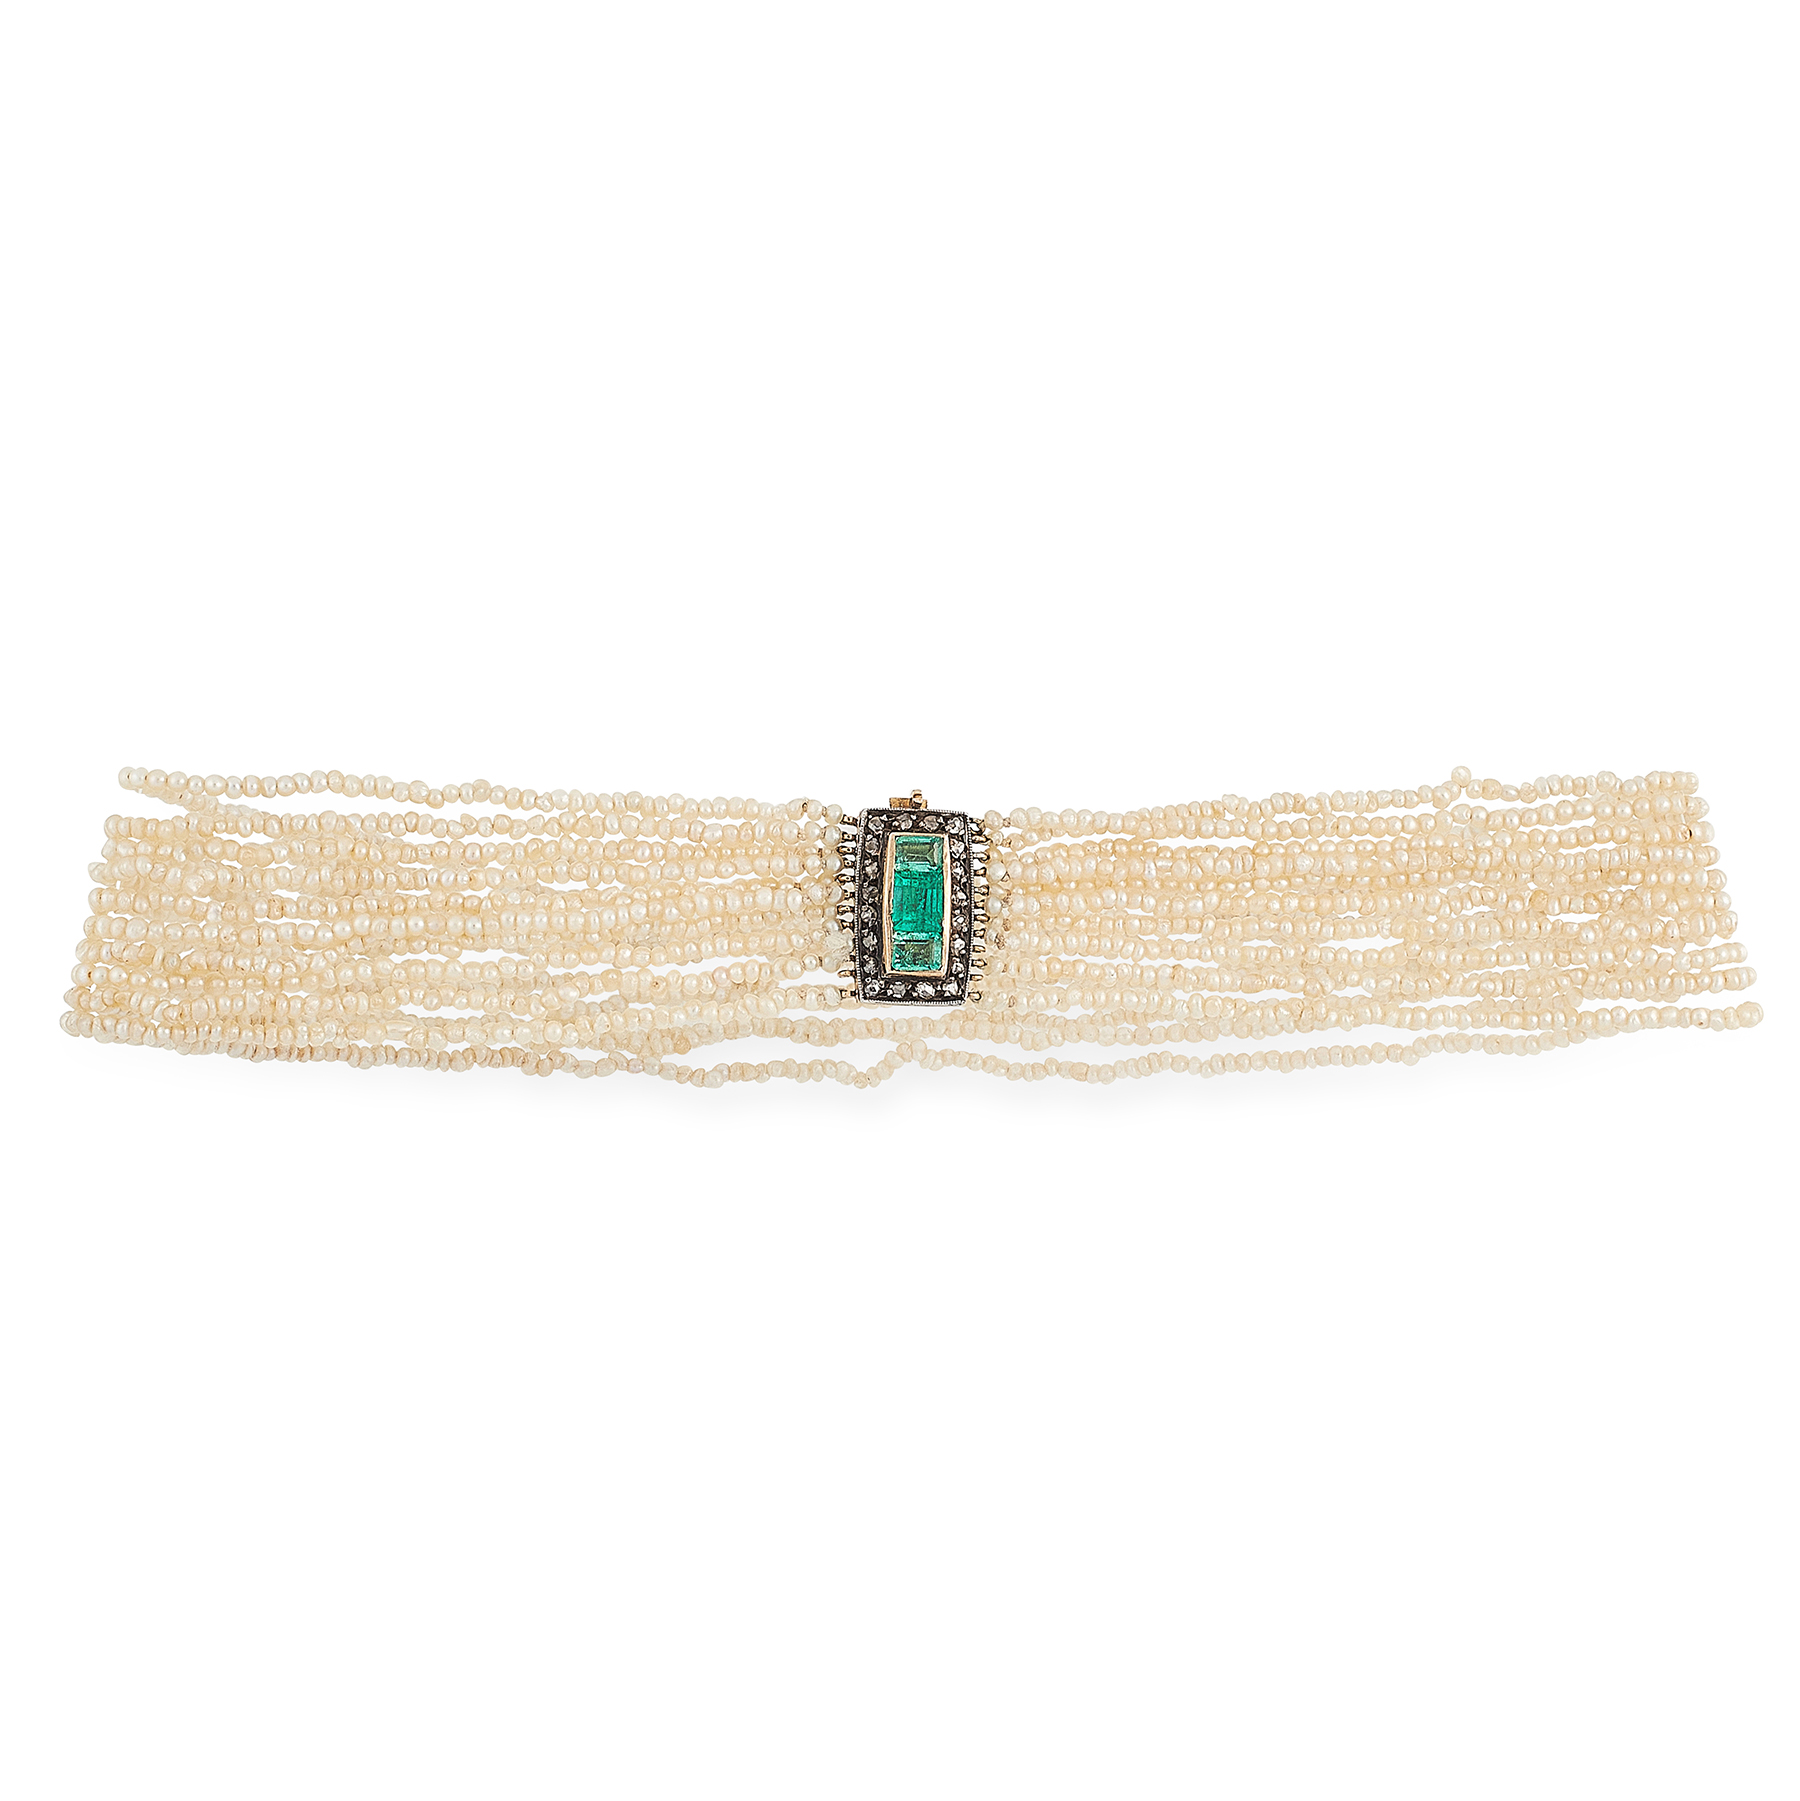 AN ANTIQUE PEARL, EMERALD AND DIAMOND CHOKER NECKLACE in yellow gold and silver, formed of ten